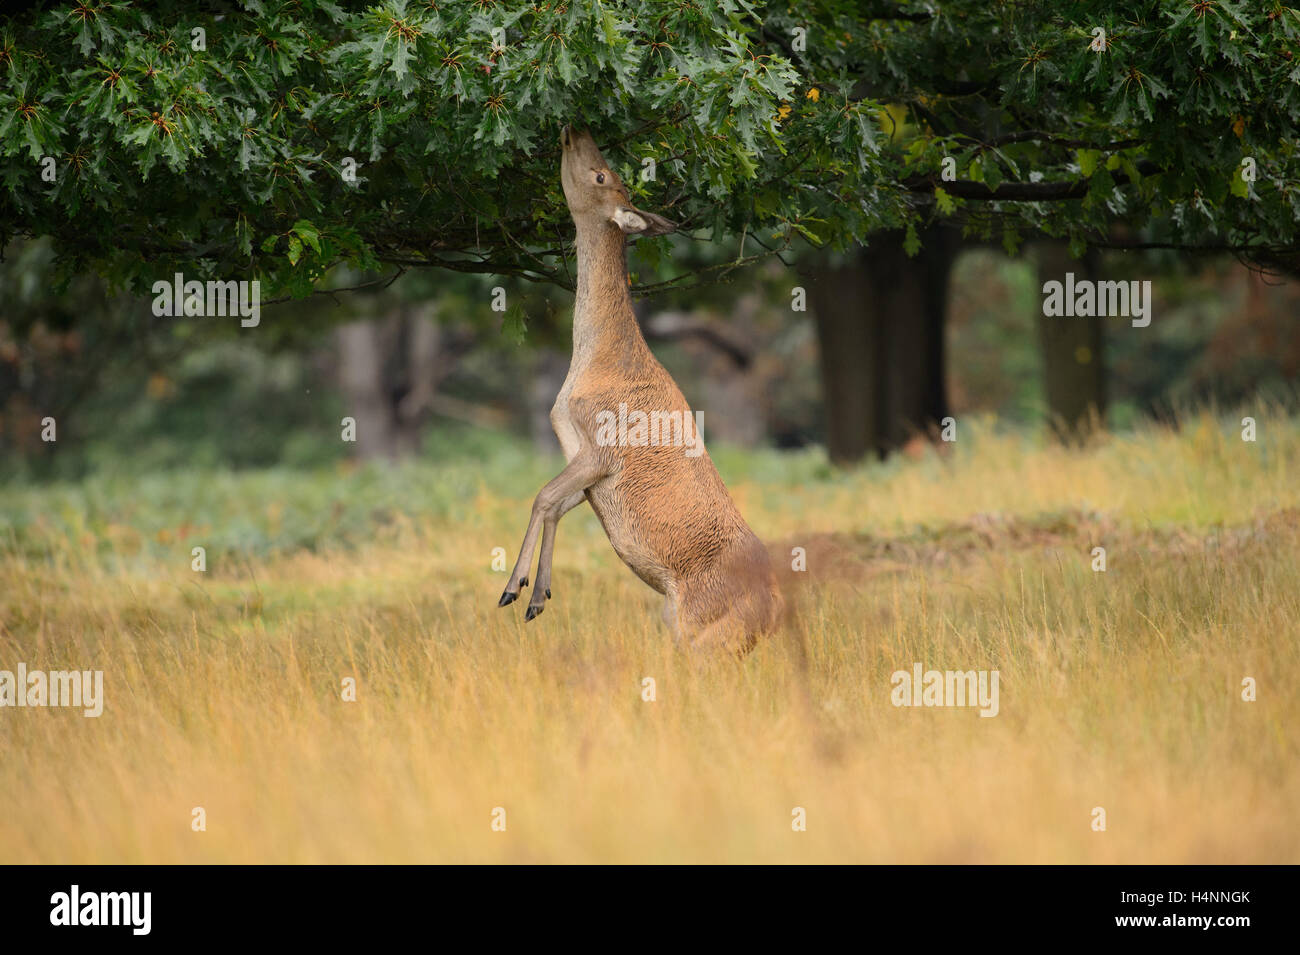 Female red deer standing on her hind legs to reach and eat oak leaves. Richmond Park, London, UK. - Stock Image